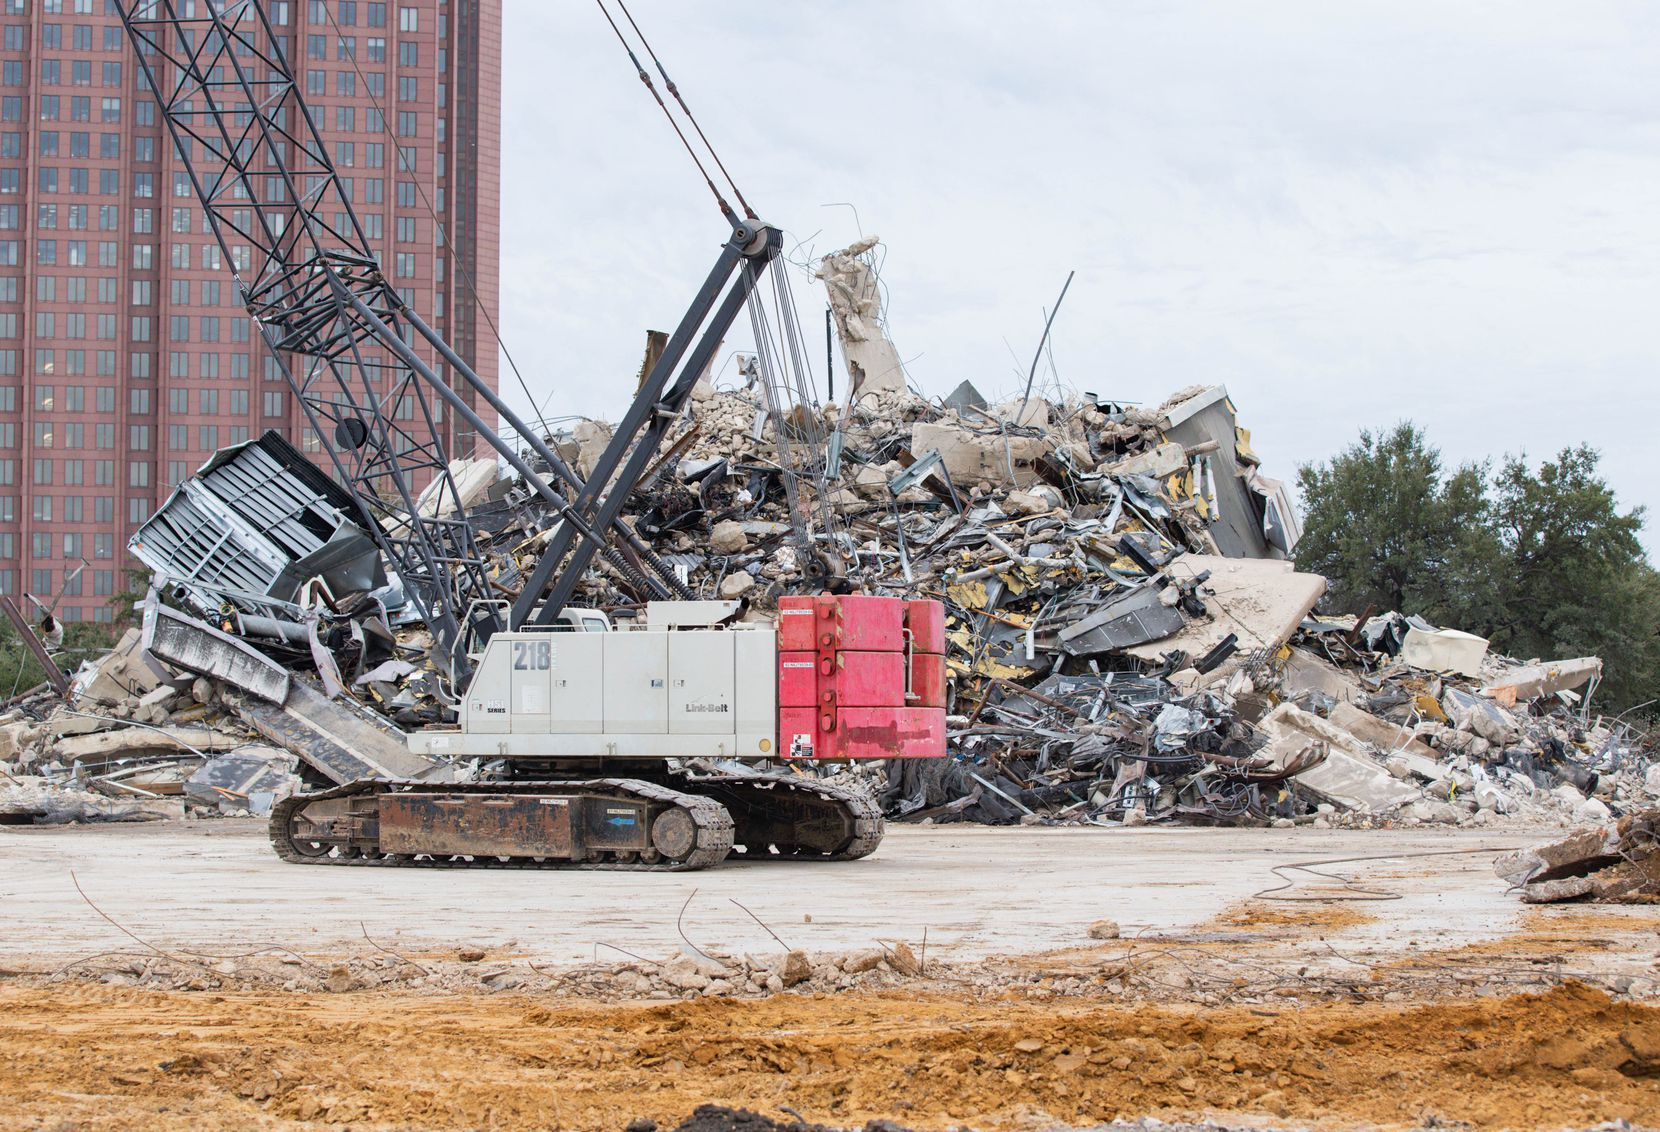 It took weeks, but the former Affiliated Computer Services building on Haskell Avenue was finally reduced to a pile of rubble on March 2, 2020.